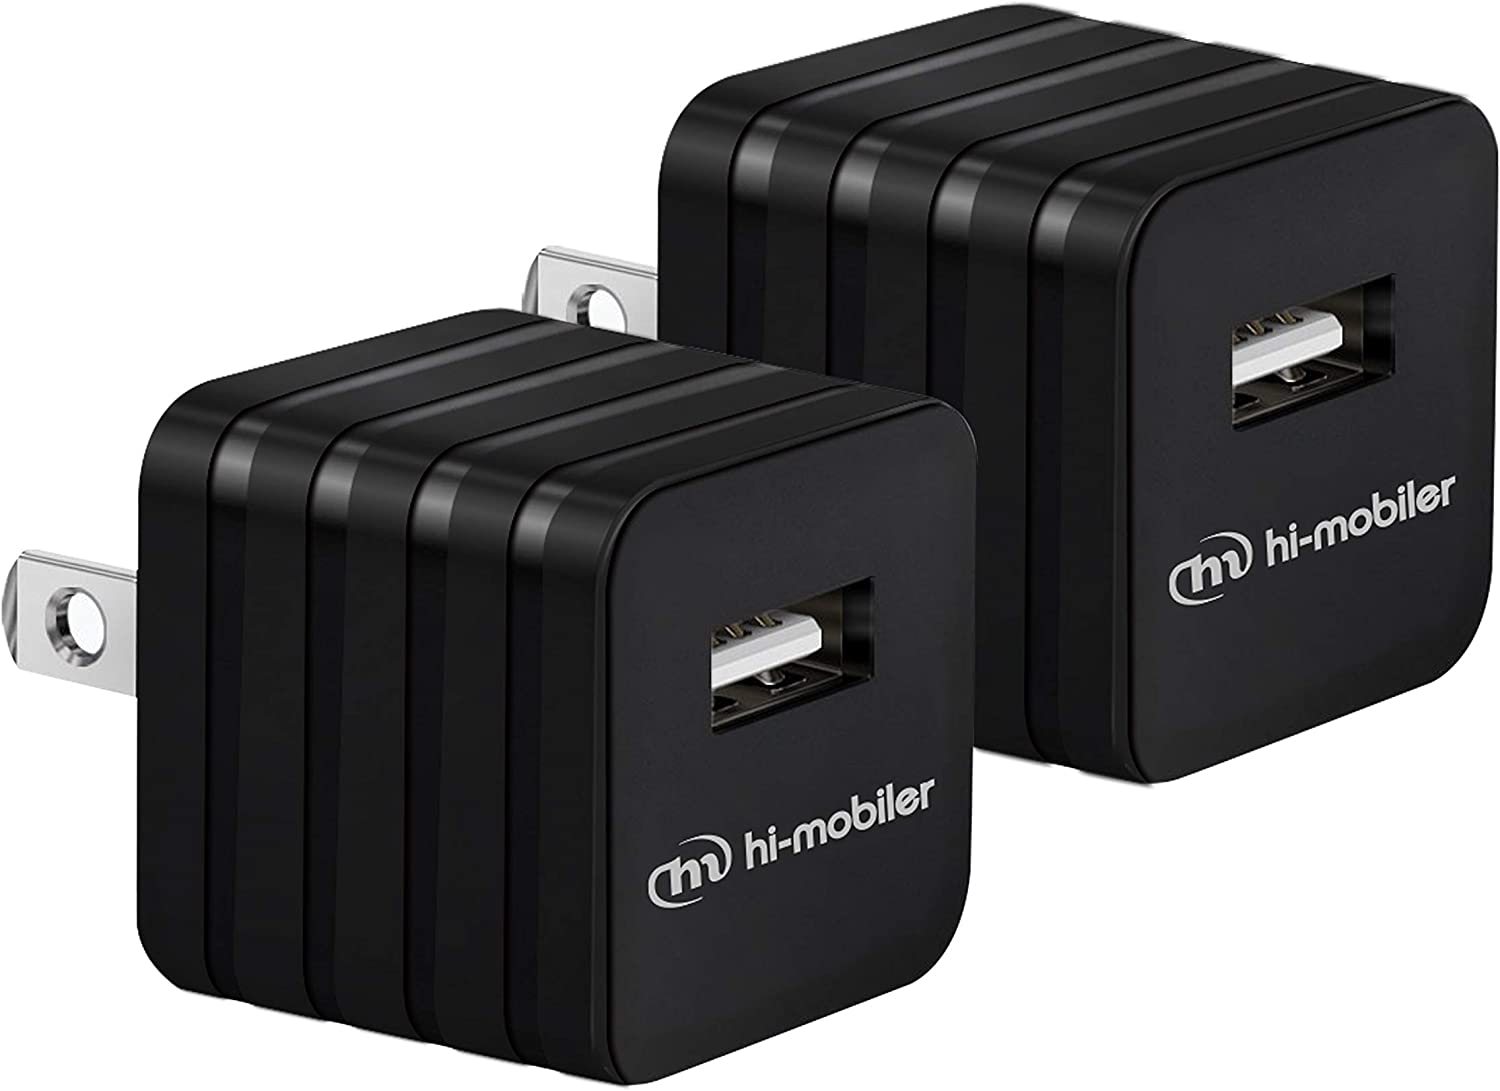 Hi-Mobiler Single USB Charger Universal Travel Charger Rapid Speed USB Wall Charger 5V1A